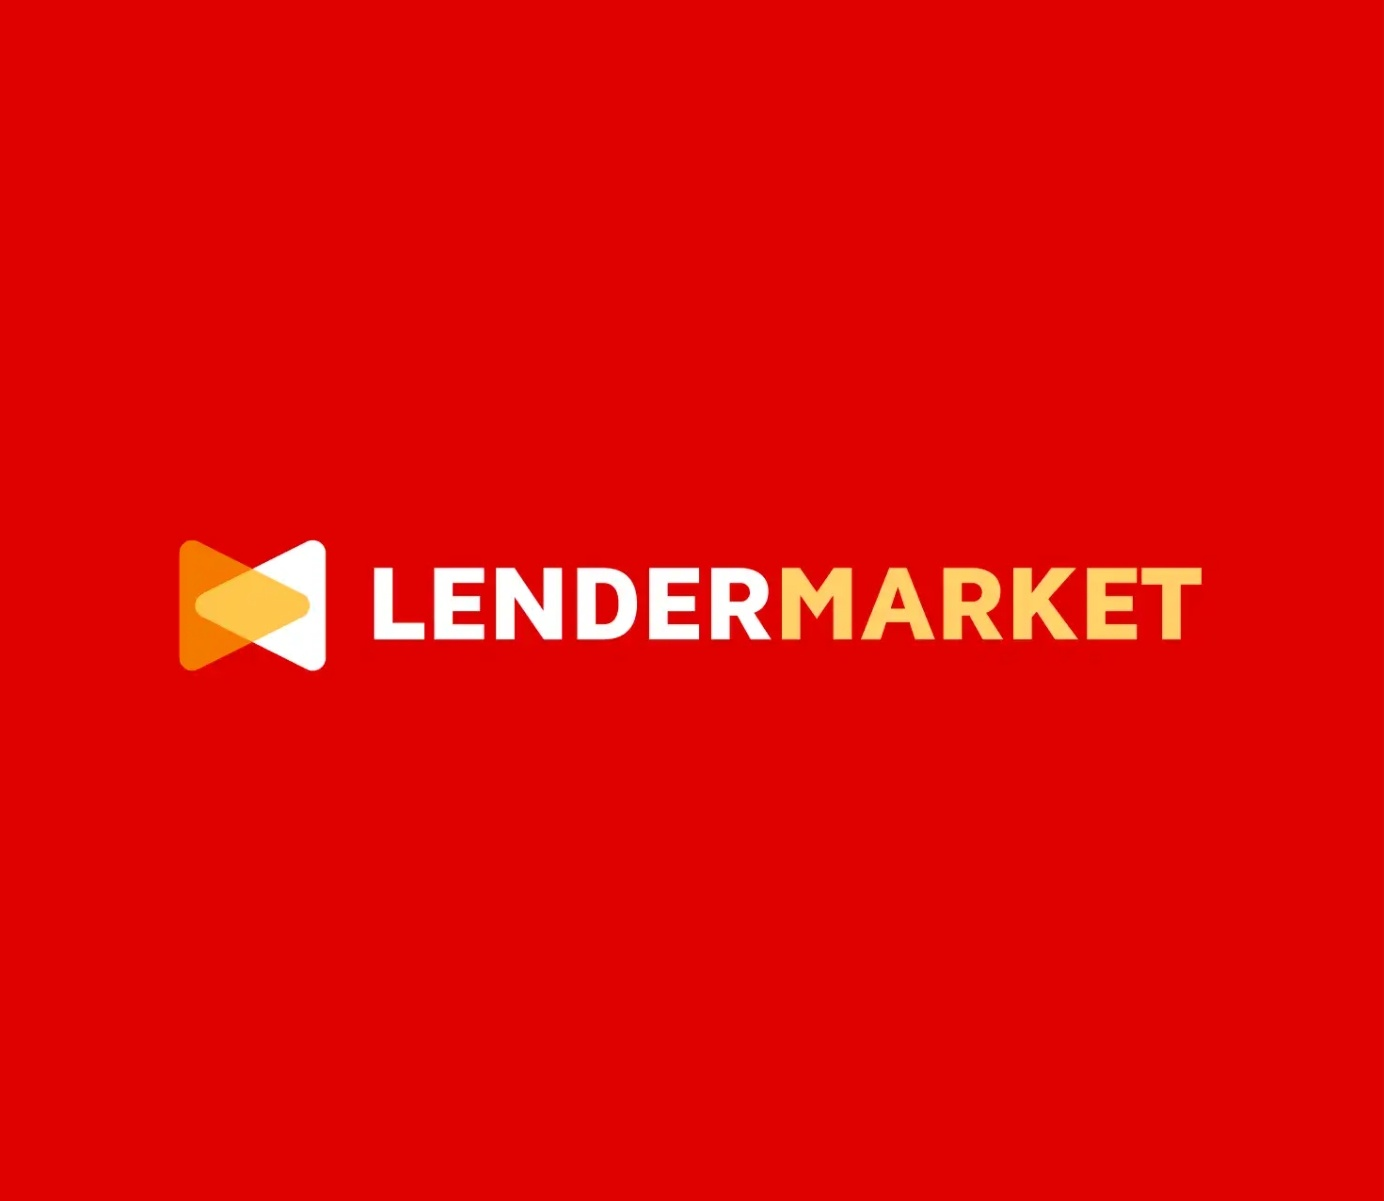 Lendermarket [interview]: Ambitious P2P platform aims to grow significantly